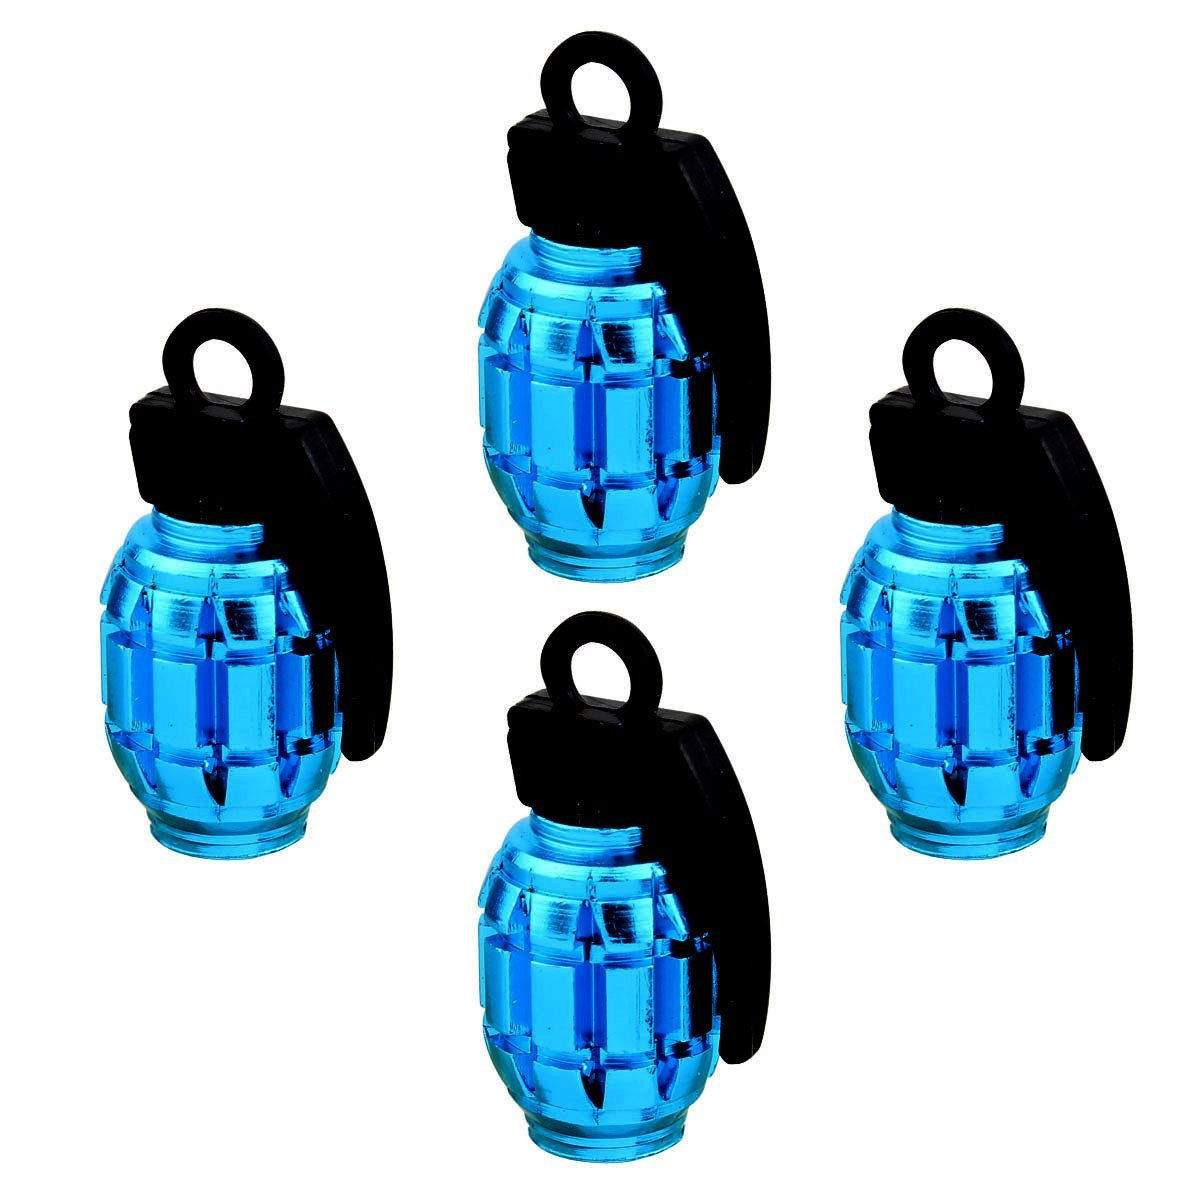 4pcs Universal Wheel Tyre Valve Caps Aluminum Grenade Bomb Shape Bicycle Tire Air Valve Cover for Car Truck Motocycle sky blue